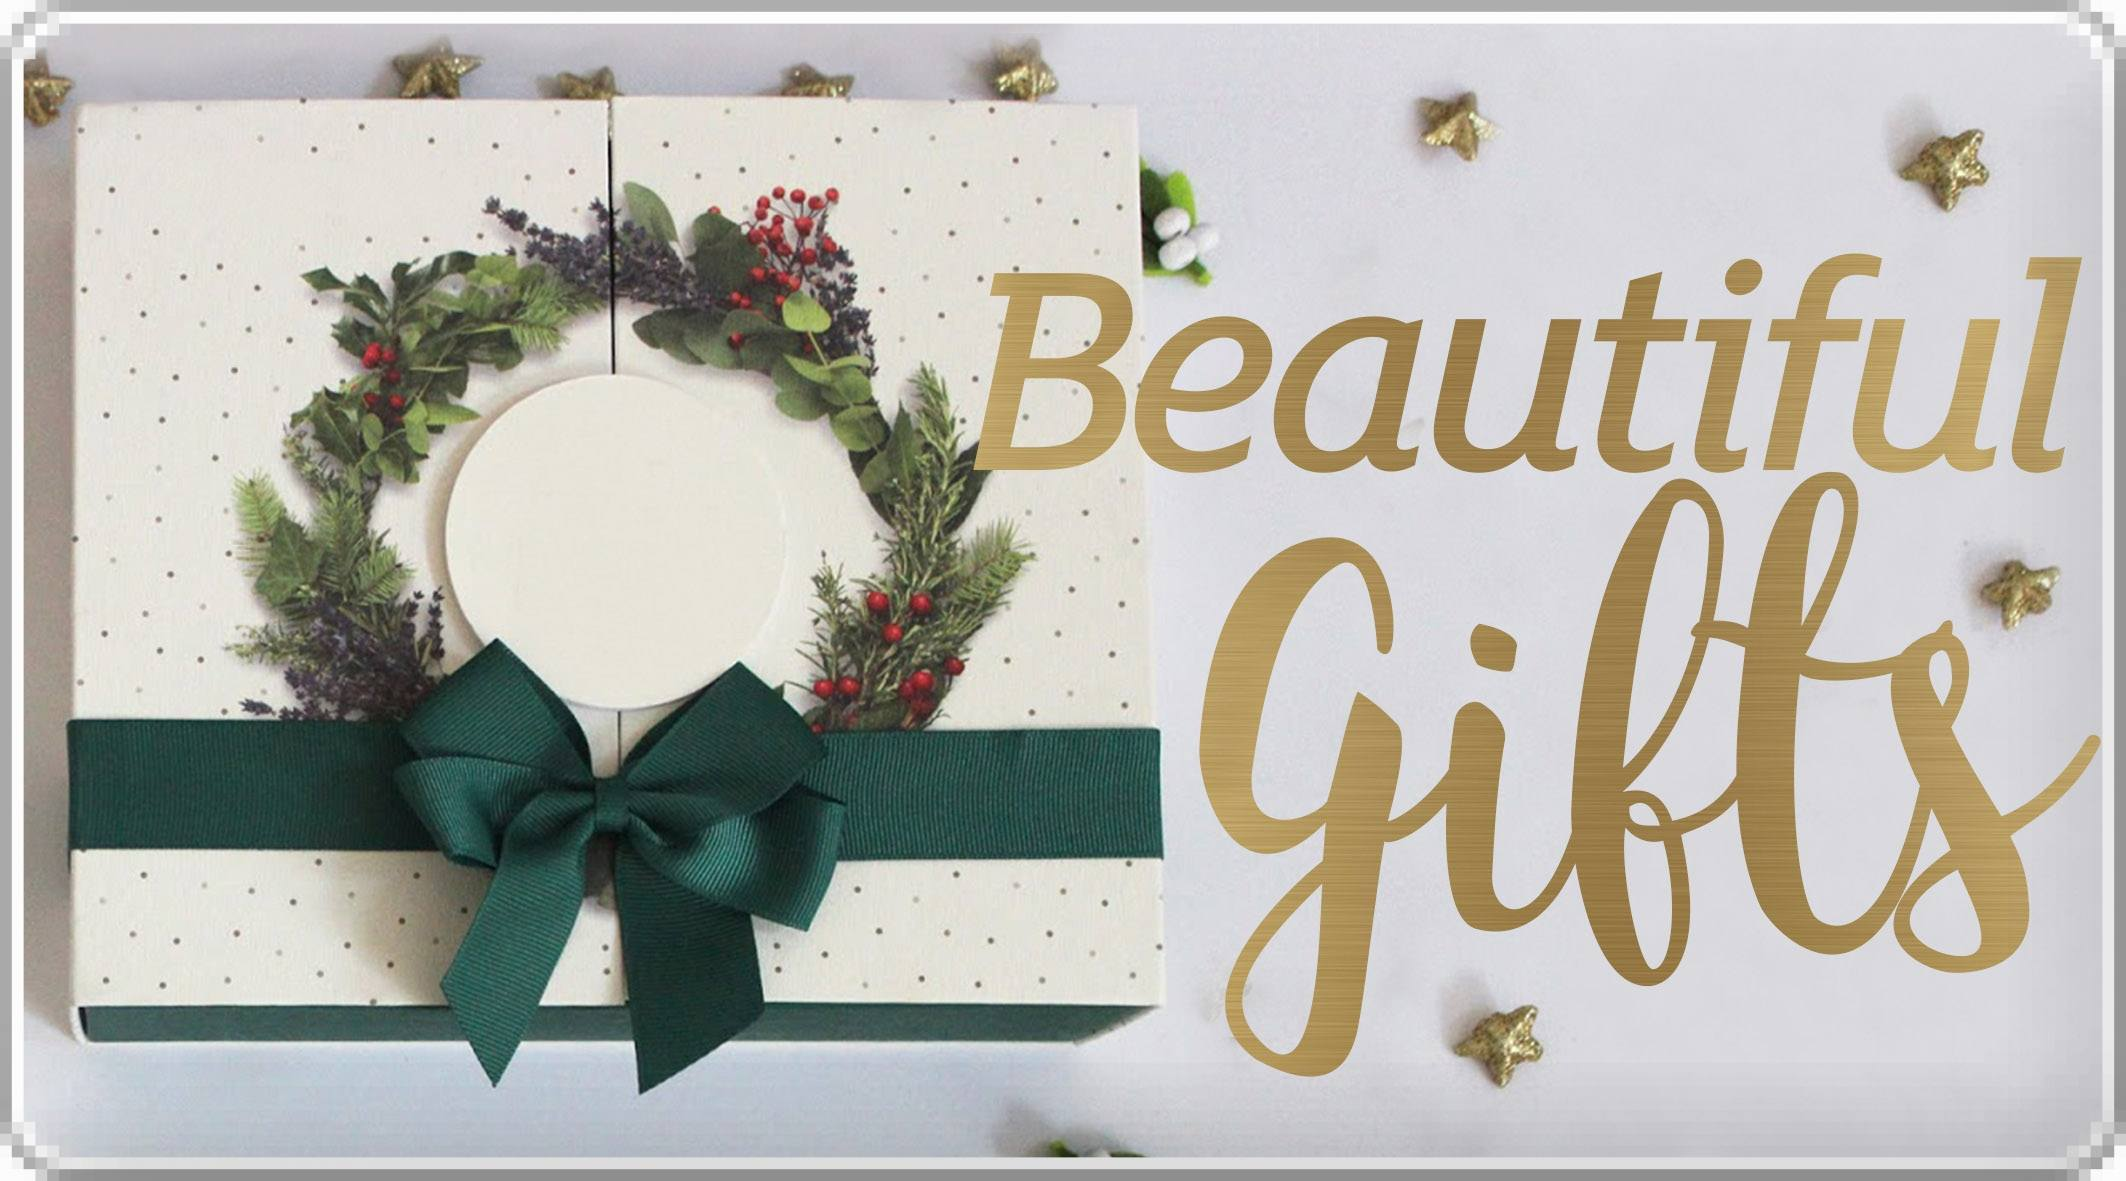 Banner: Beautiful Christian Gifts for Christmas